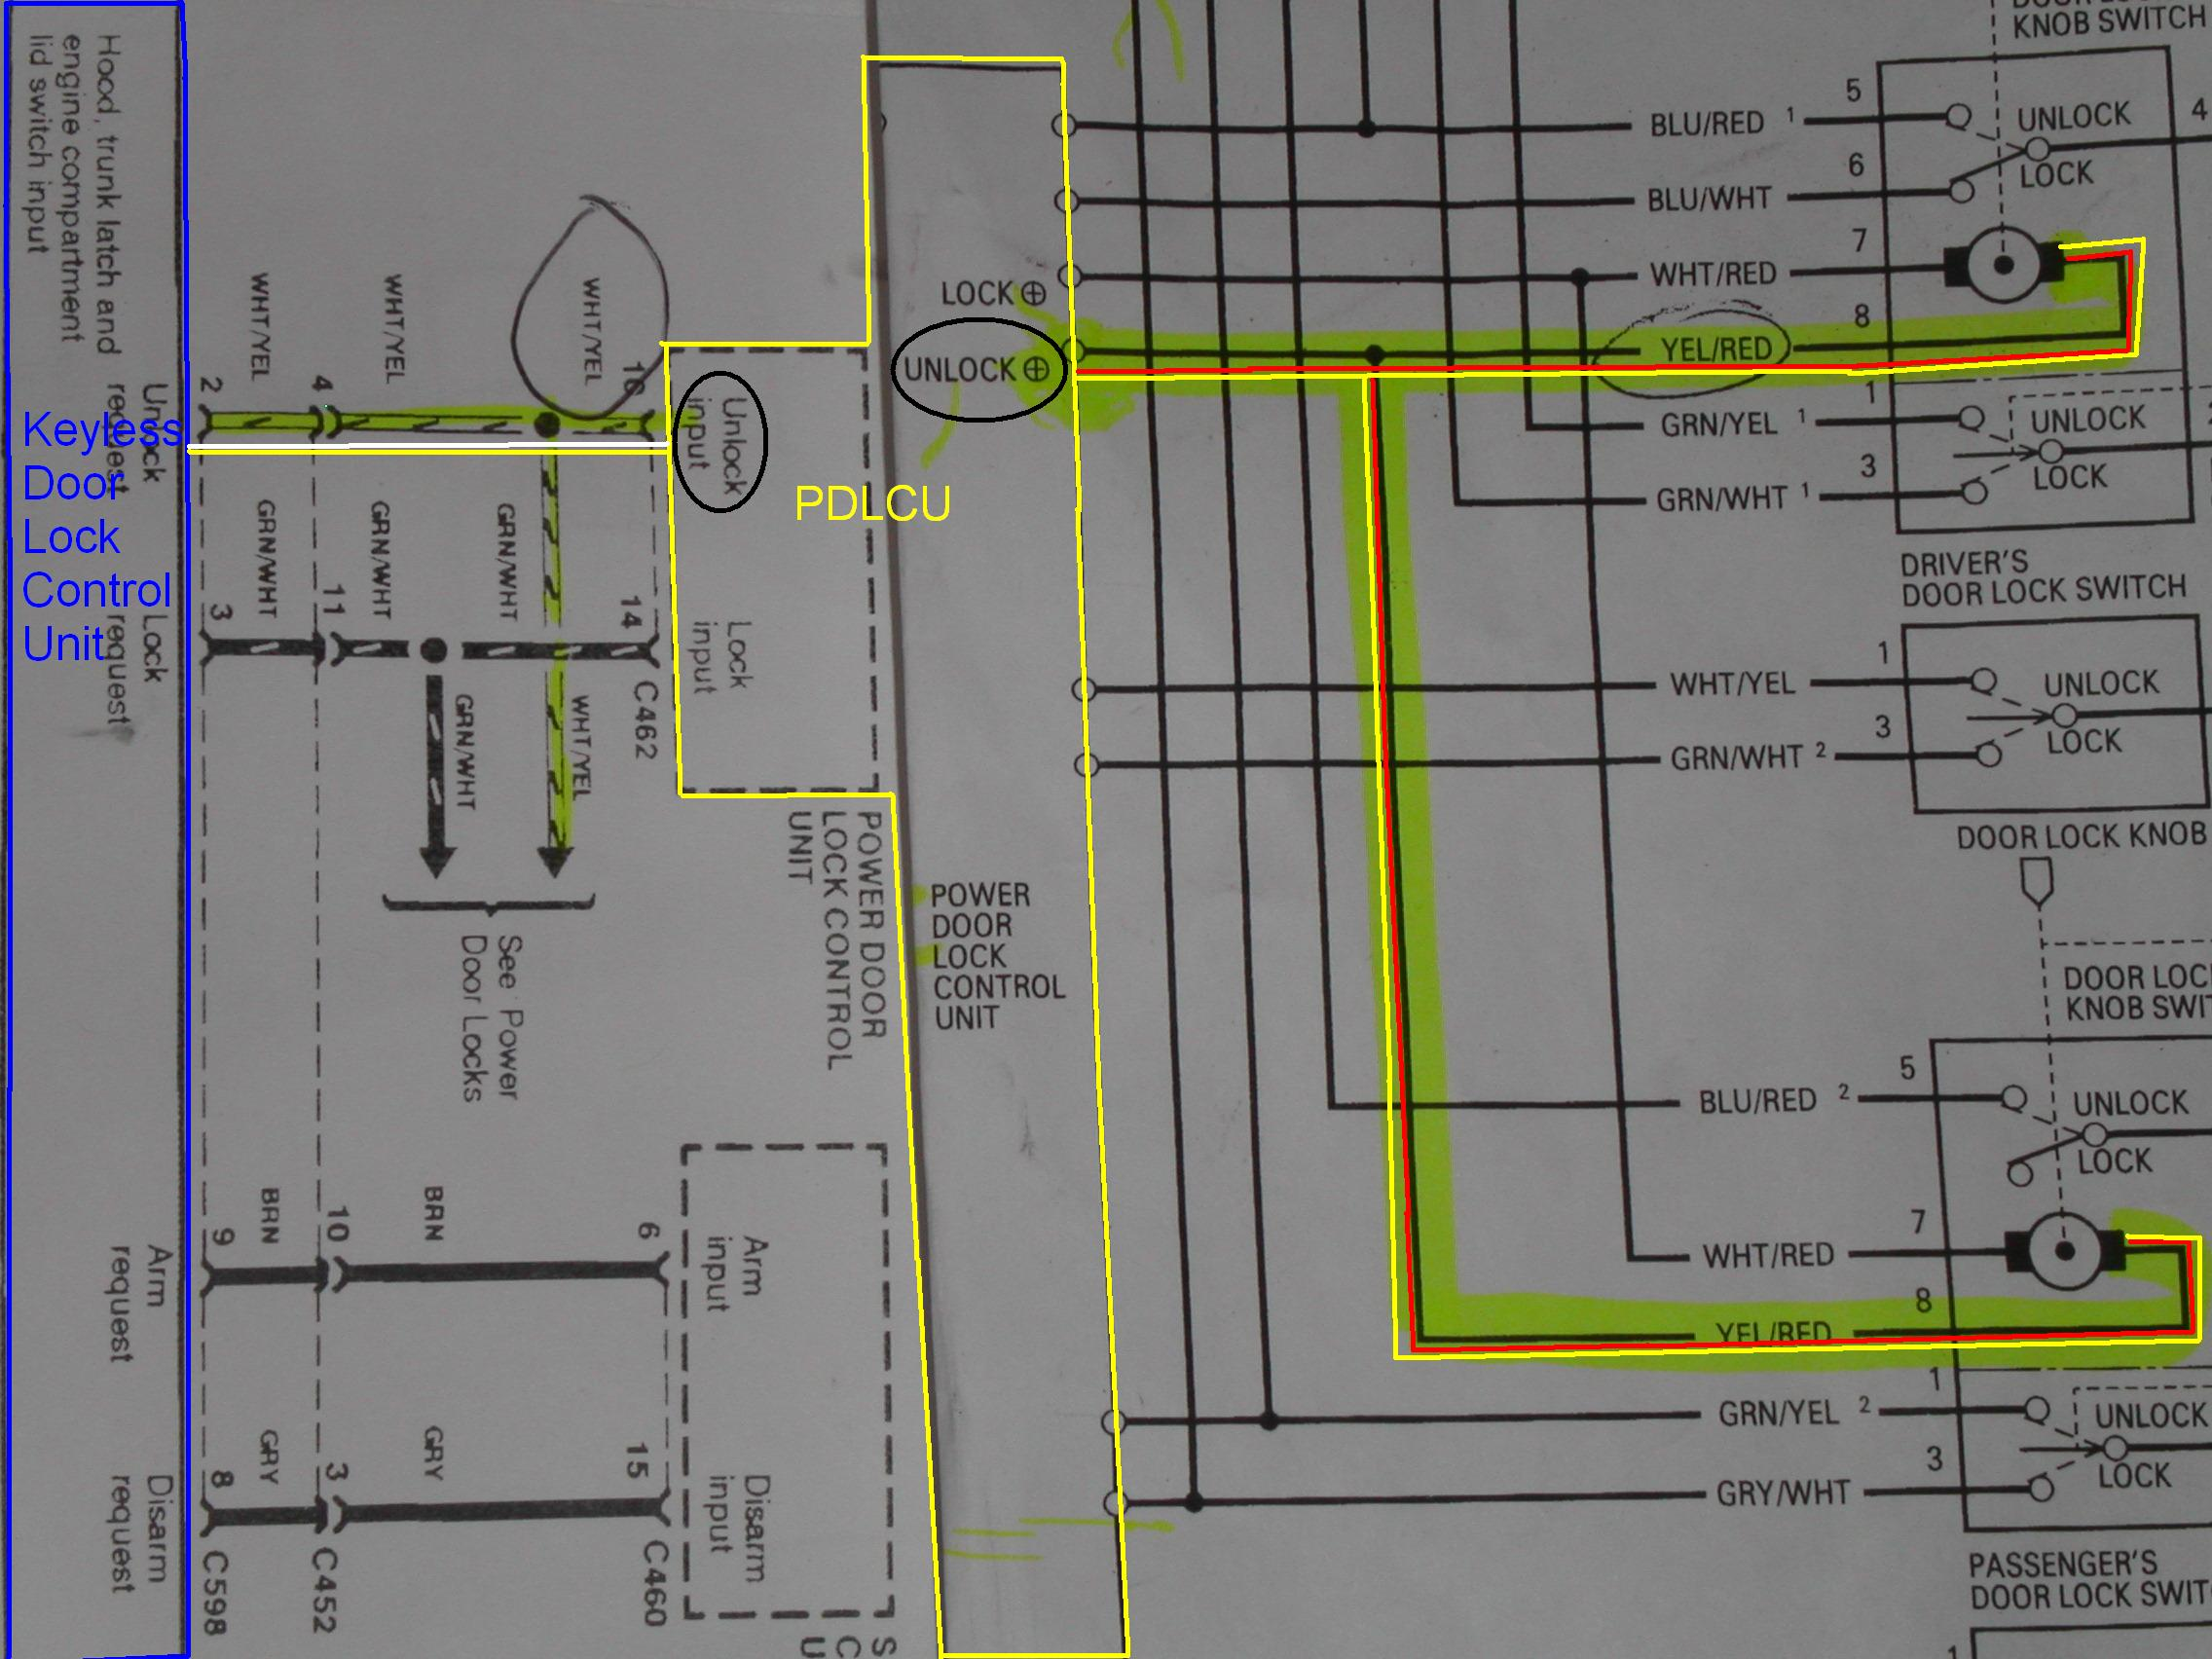 4300 wiring diagram get image about wiring diagram updated wiring diagram 95 international 4700 get image about wiring